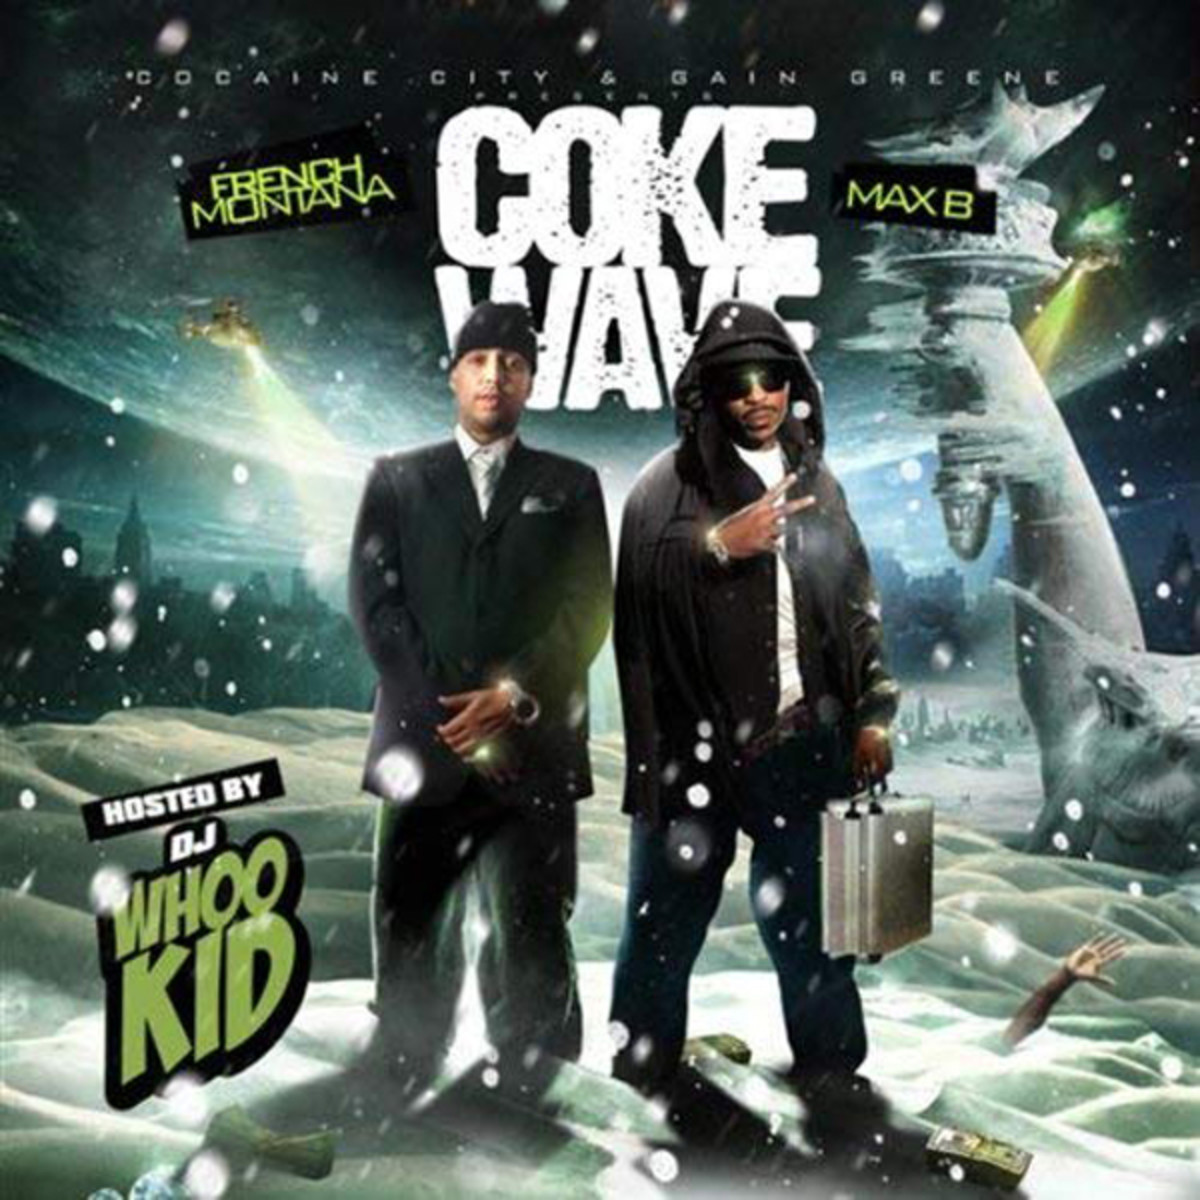 french-montana-max-b-coke-wave-cover